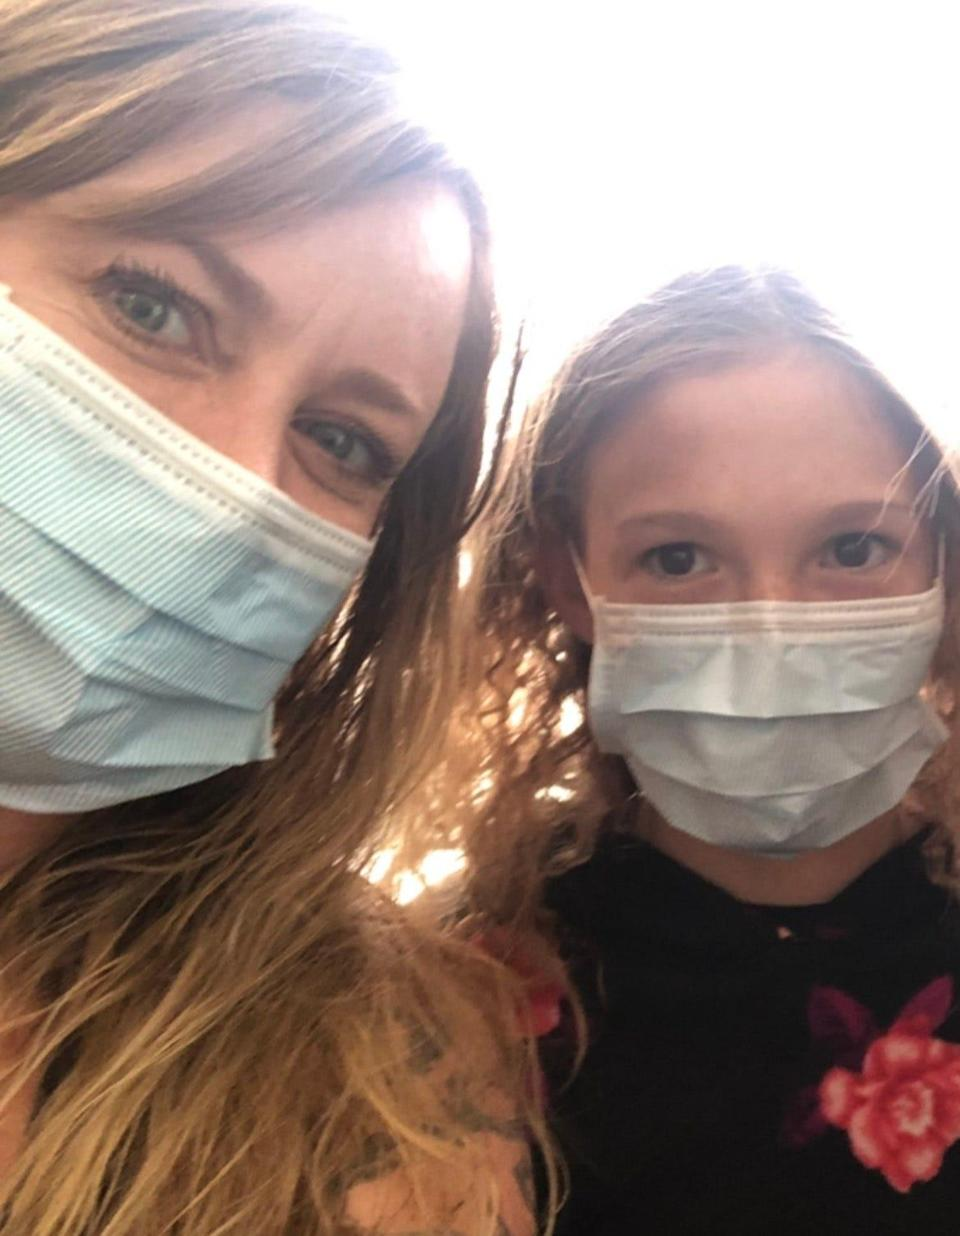 Josie Chelotti, a vice principal and athletic director in Plumas County, California, and her daughter, Eva Morris, who lost their home in the Dixie Fire.